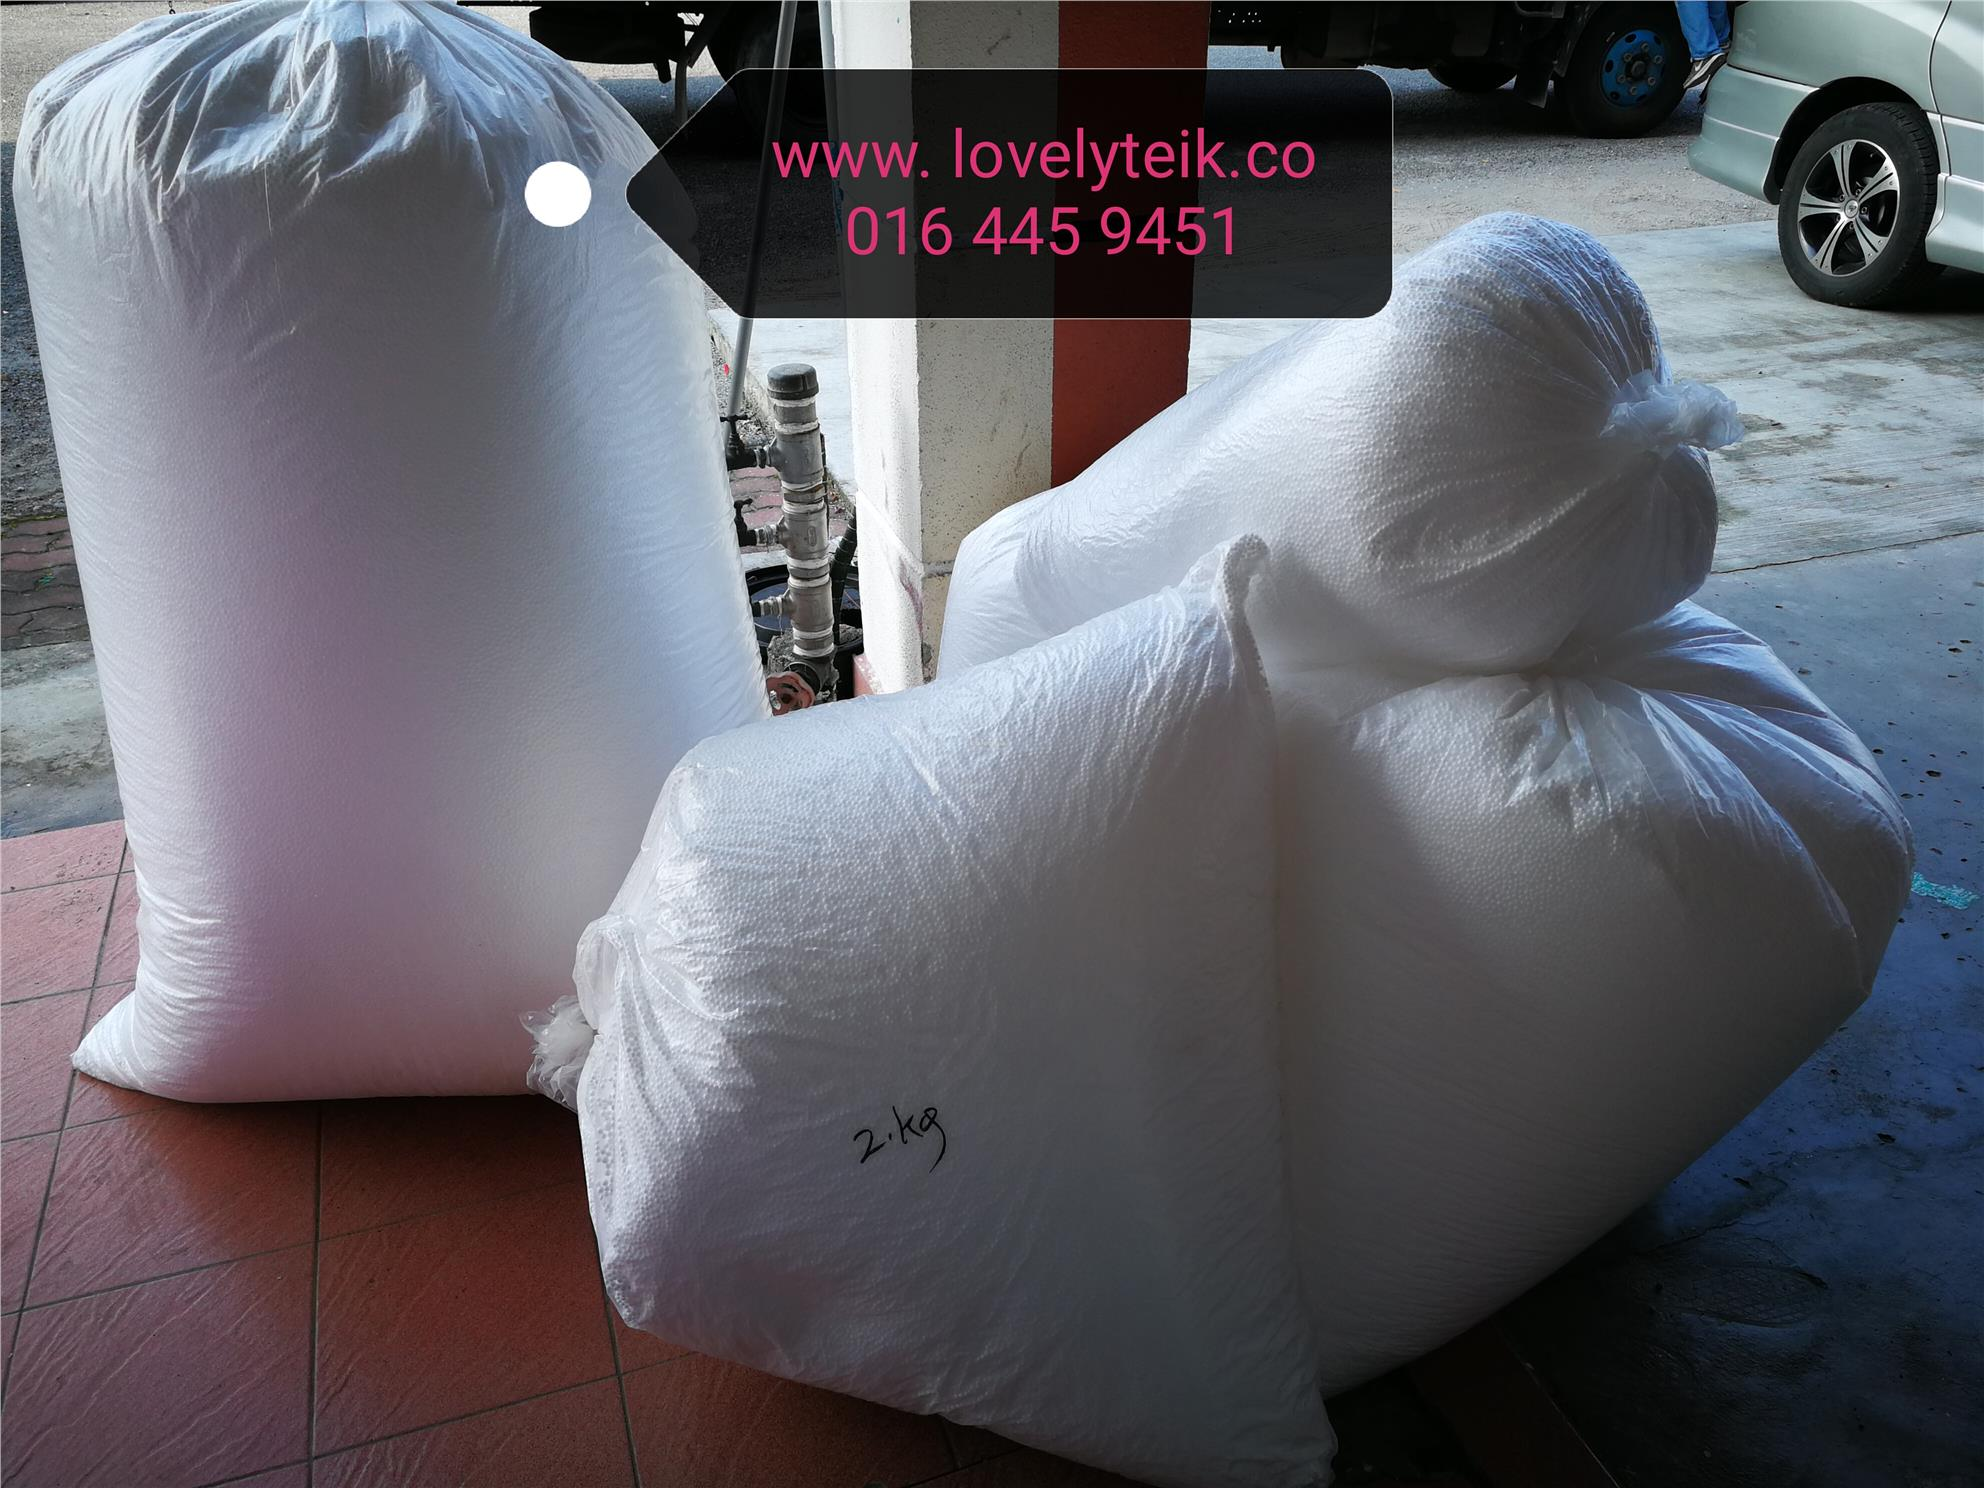 1,2,3,5kg bean bag refill clean and new polystyrene beads